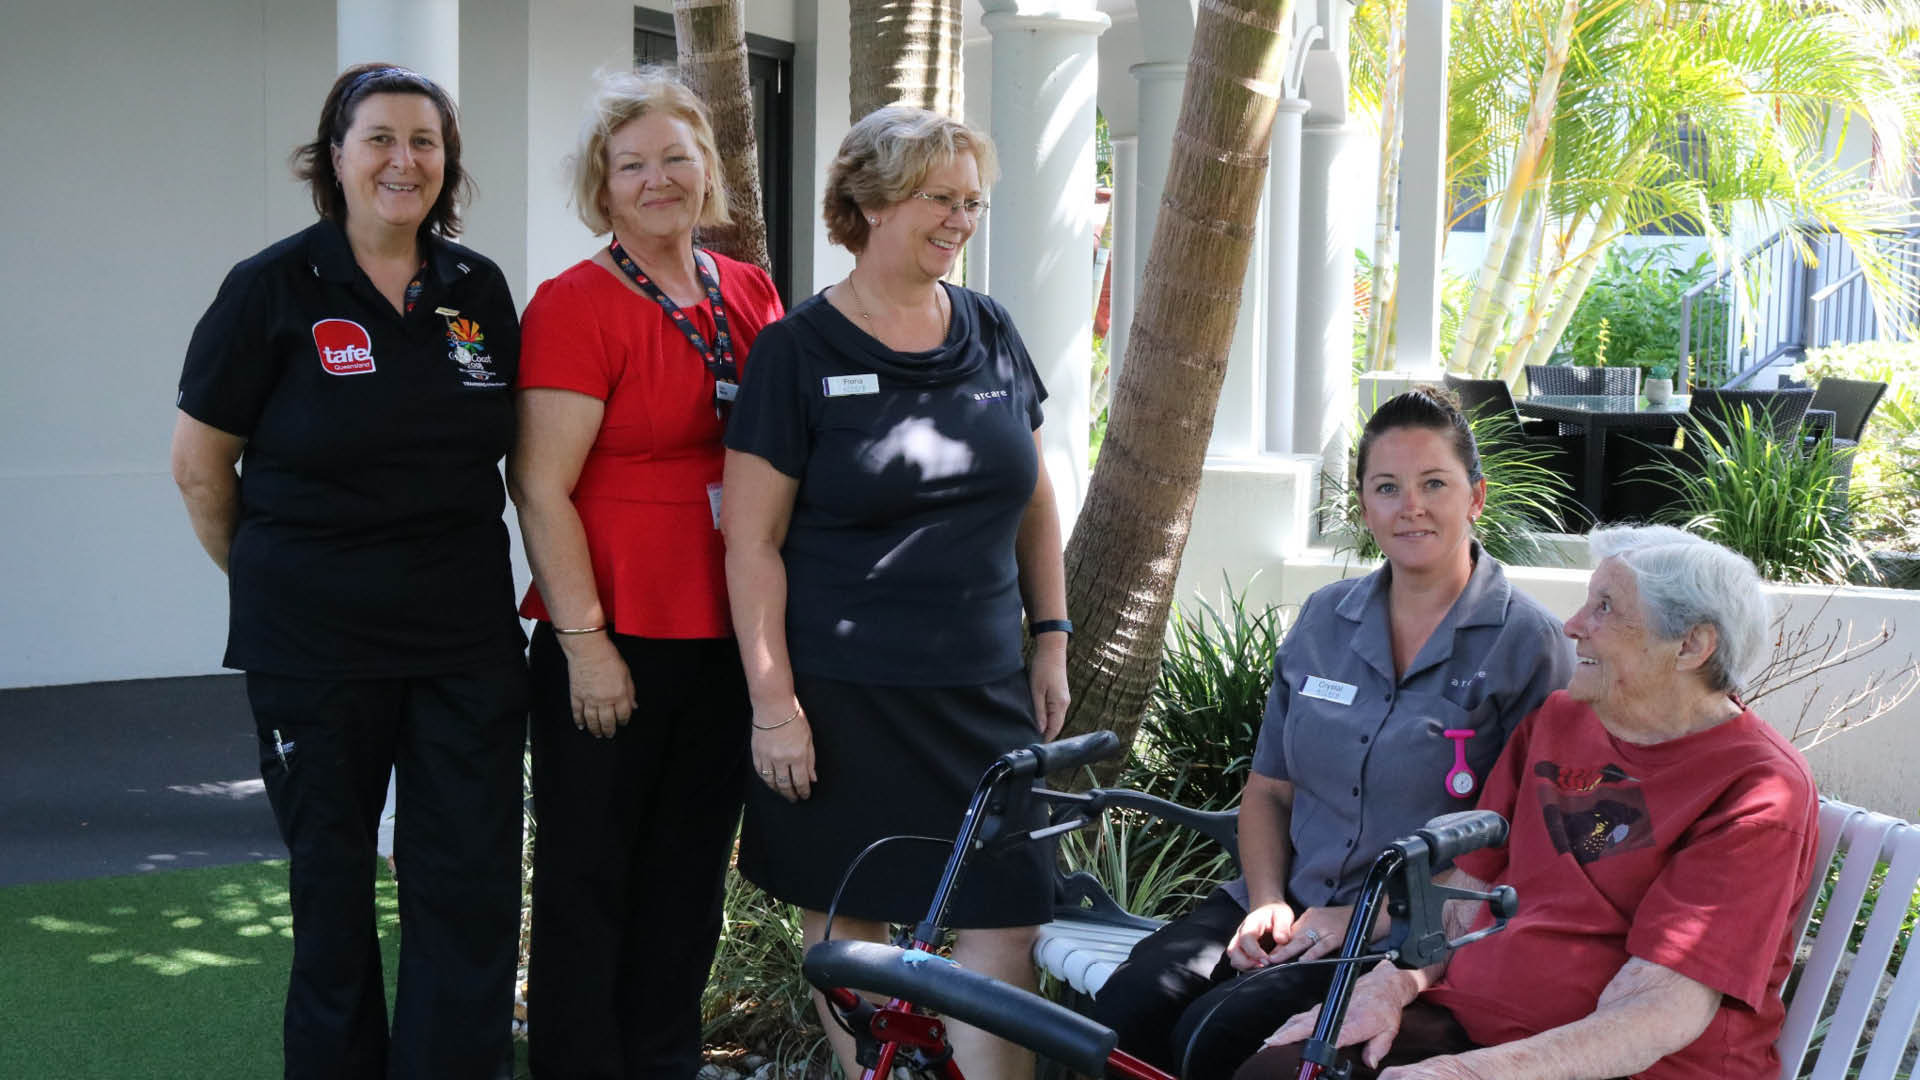 blog-real-job-outcomes-for-aged-care-students-feature.jpg